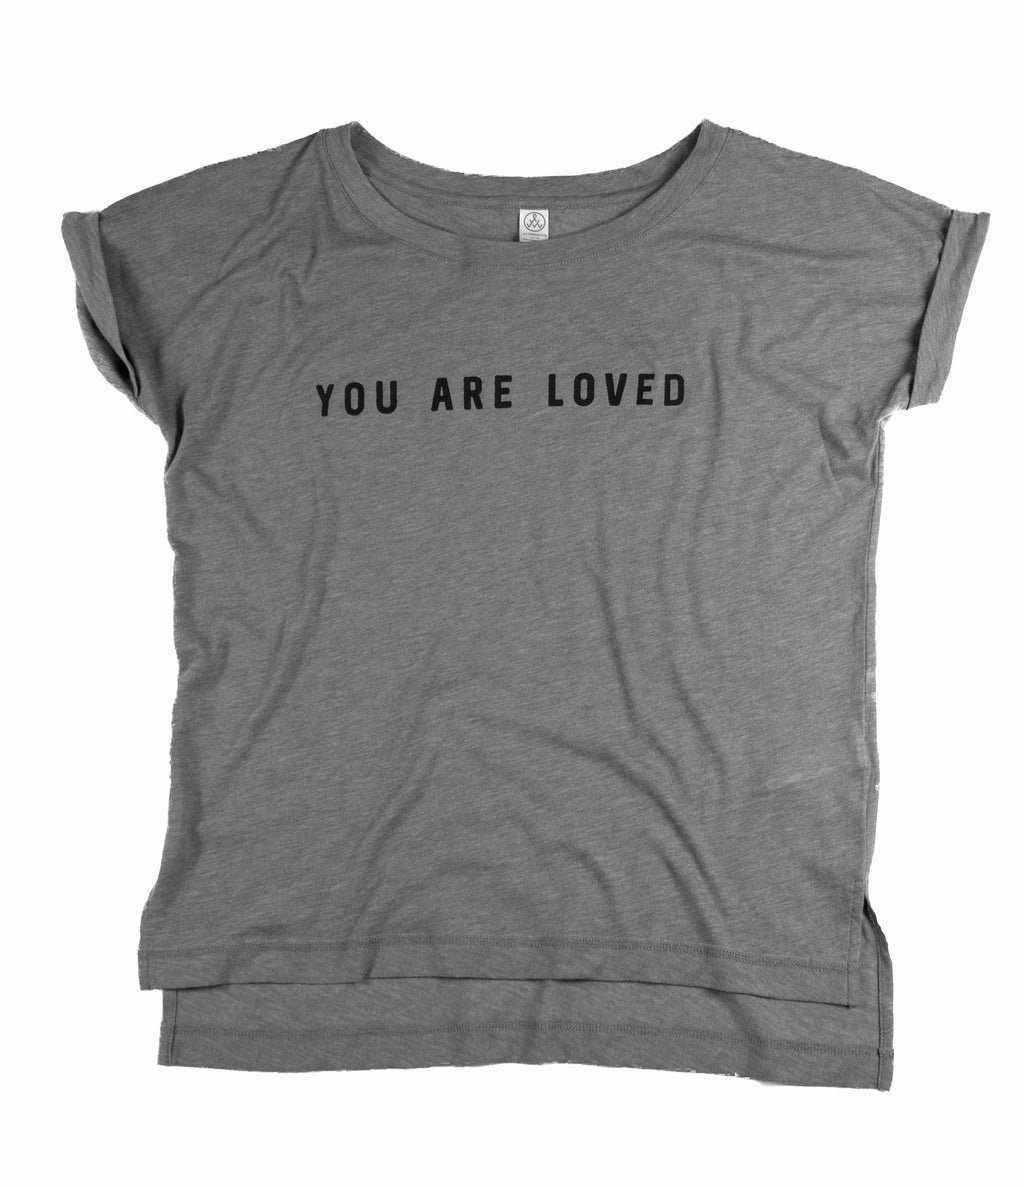 YOU ARE LOVED WOMEN'S GREY/OLIVE ROLLED-CUFF